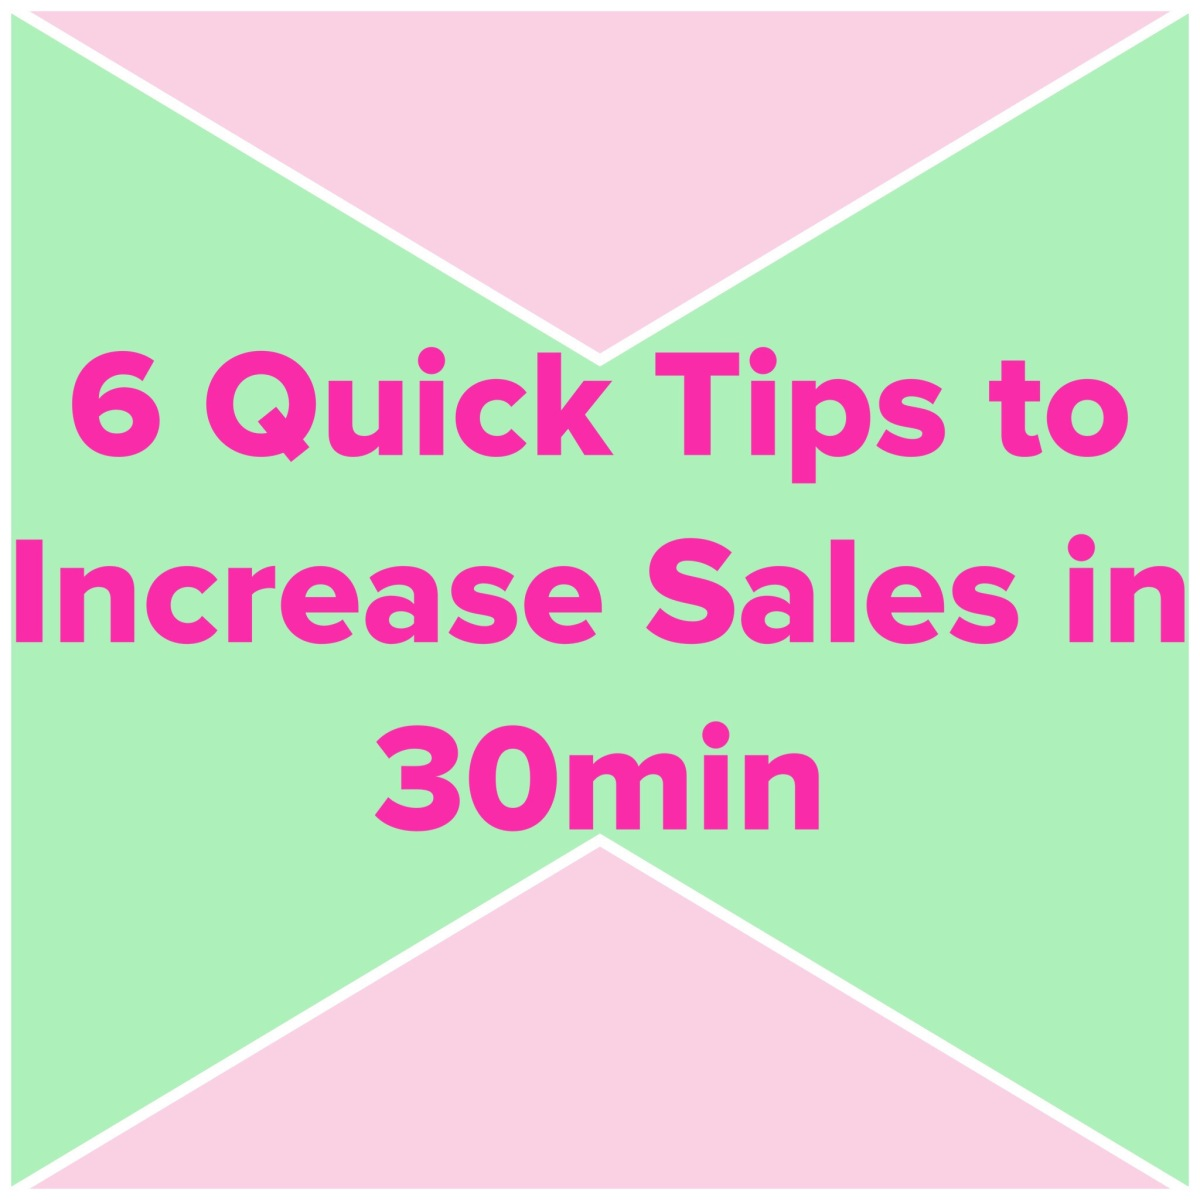 Poshmark: 6 Quick Tips you can do in 30min to Increase Sales